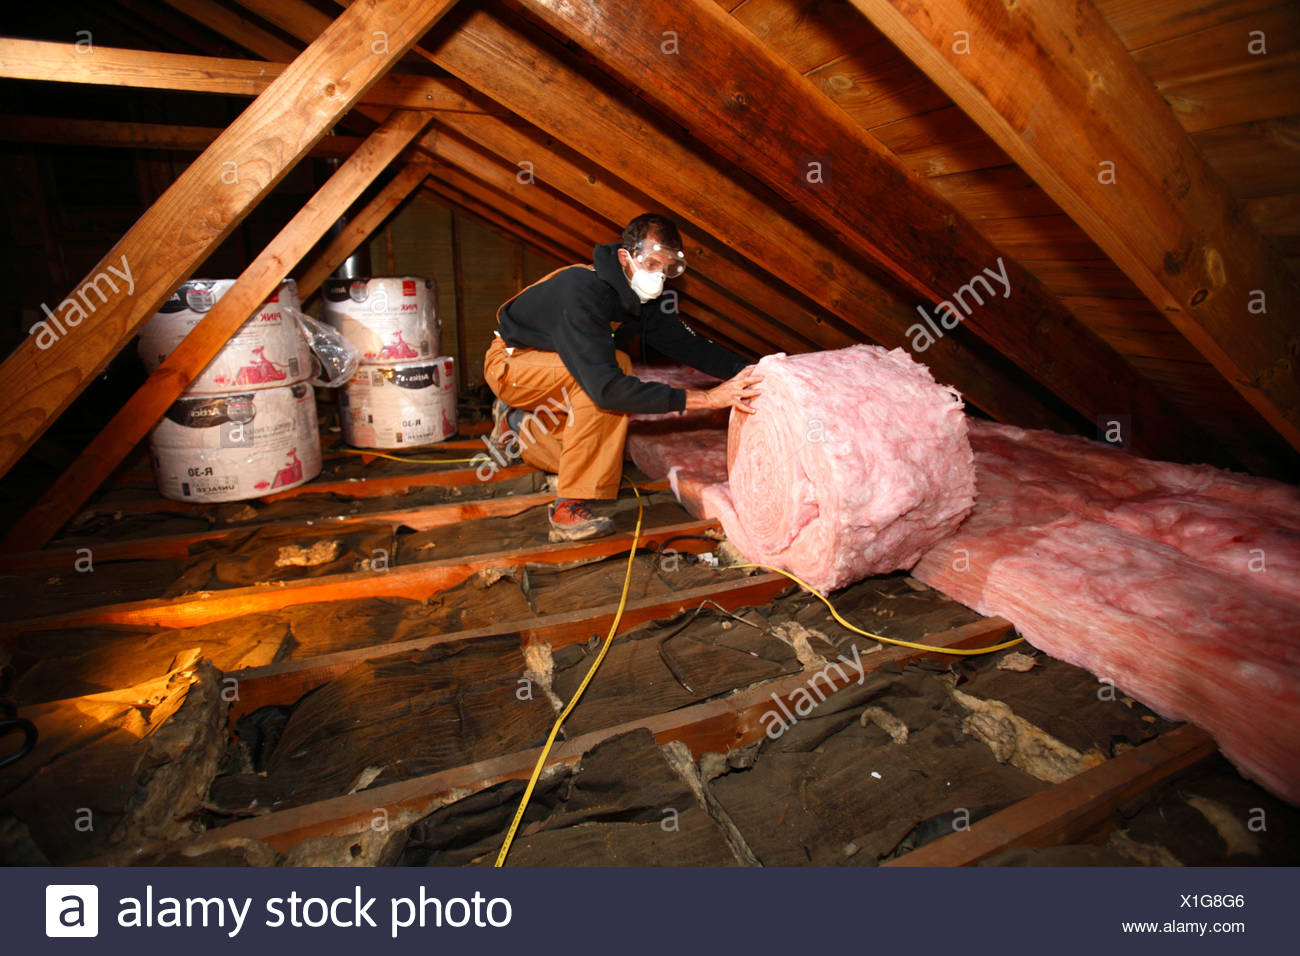 Man adds insulation to an attic - Stock Image